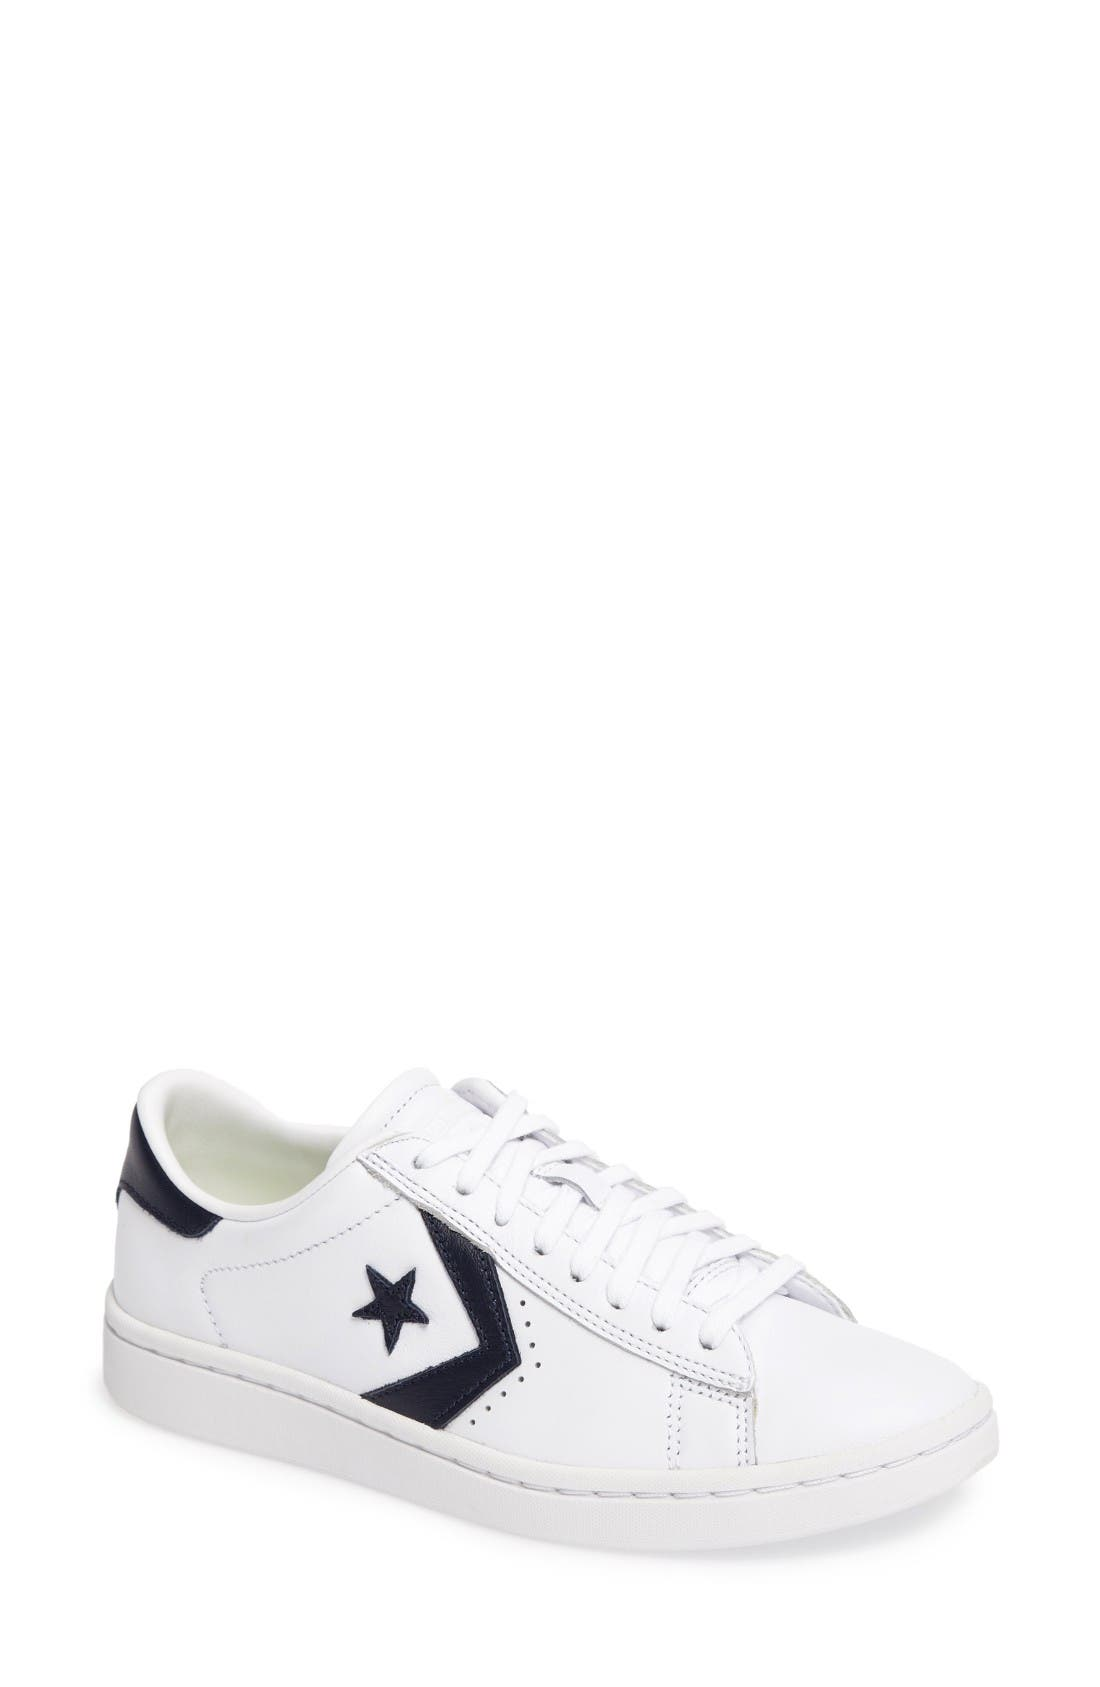 Alternate Image 1 Selected - Converse Pro Leather LP Sneaker (Women)